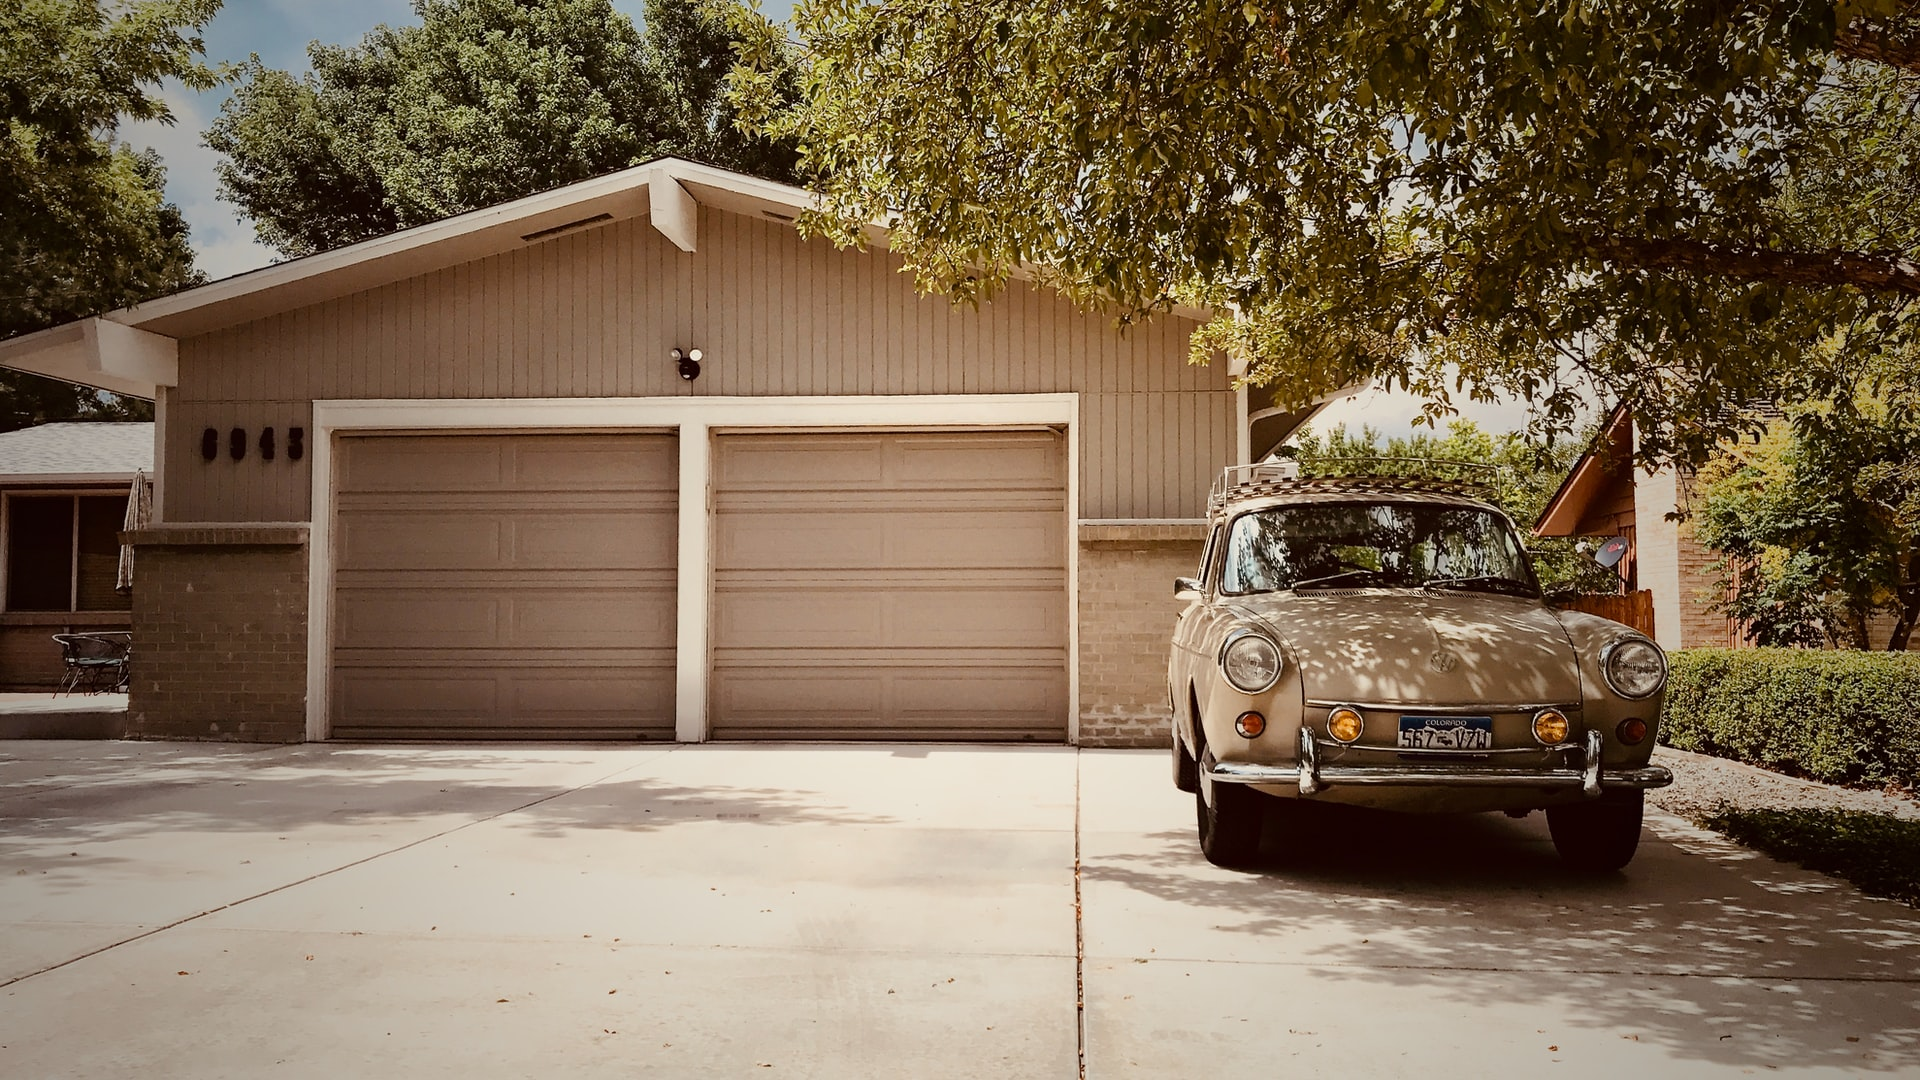 Car sitting on a driveway outside a house